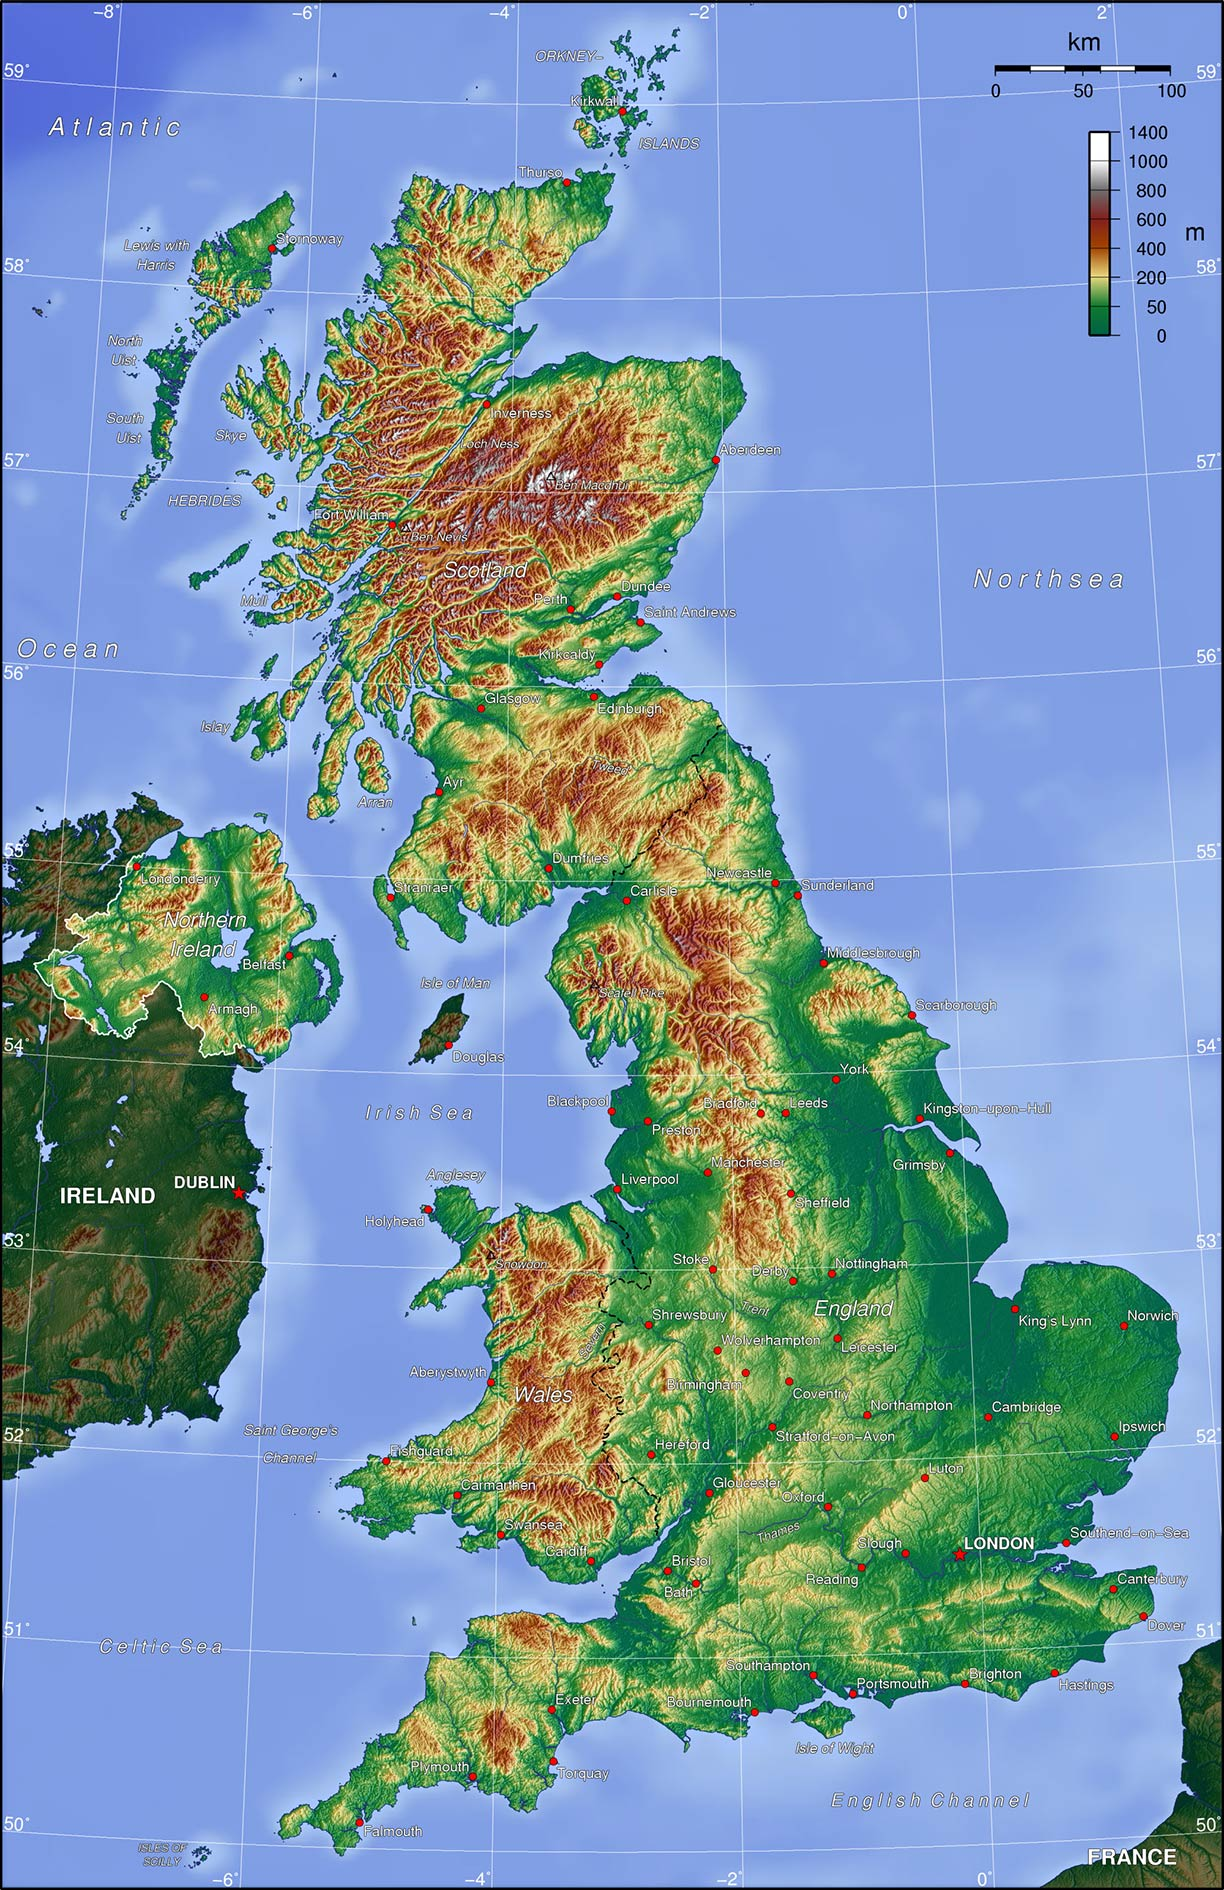 Political Map of United Kingdom - Nations Online Project on on a physical map english channel, rise of flight channel, body of the central channel,